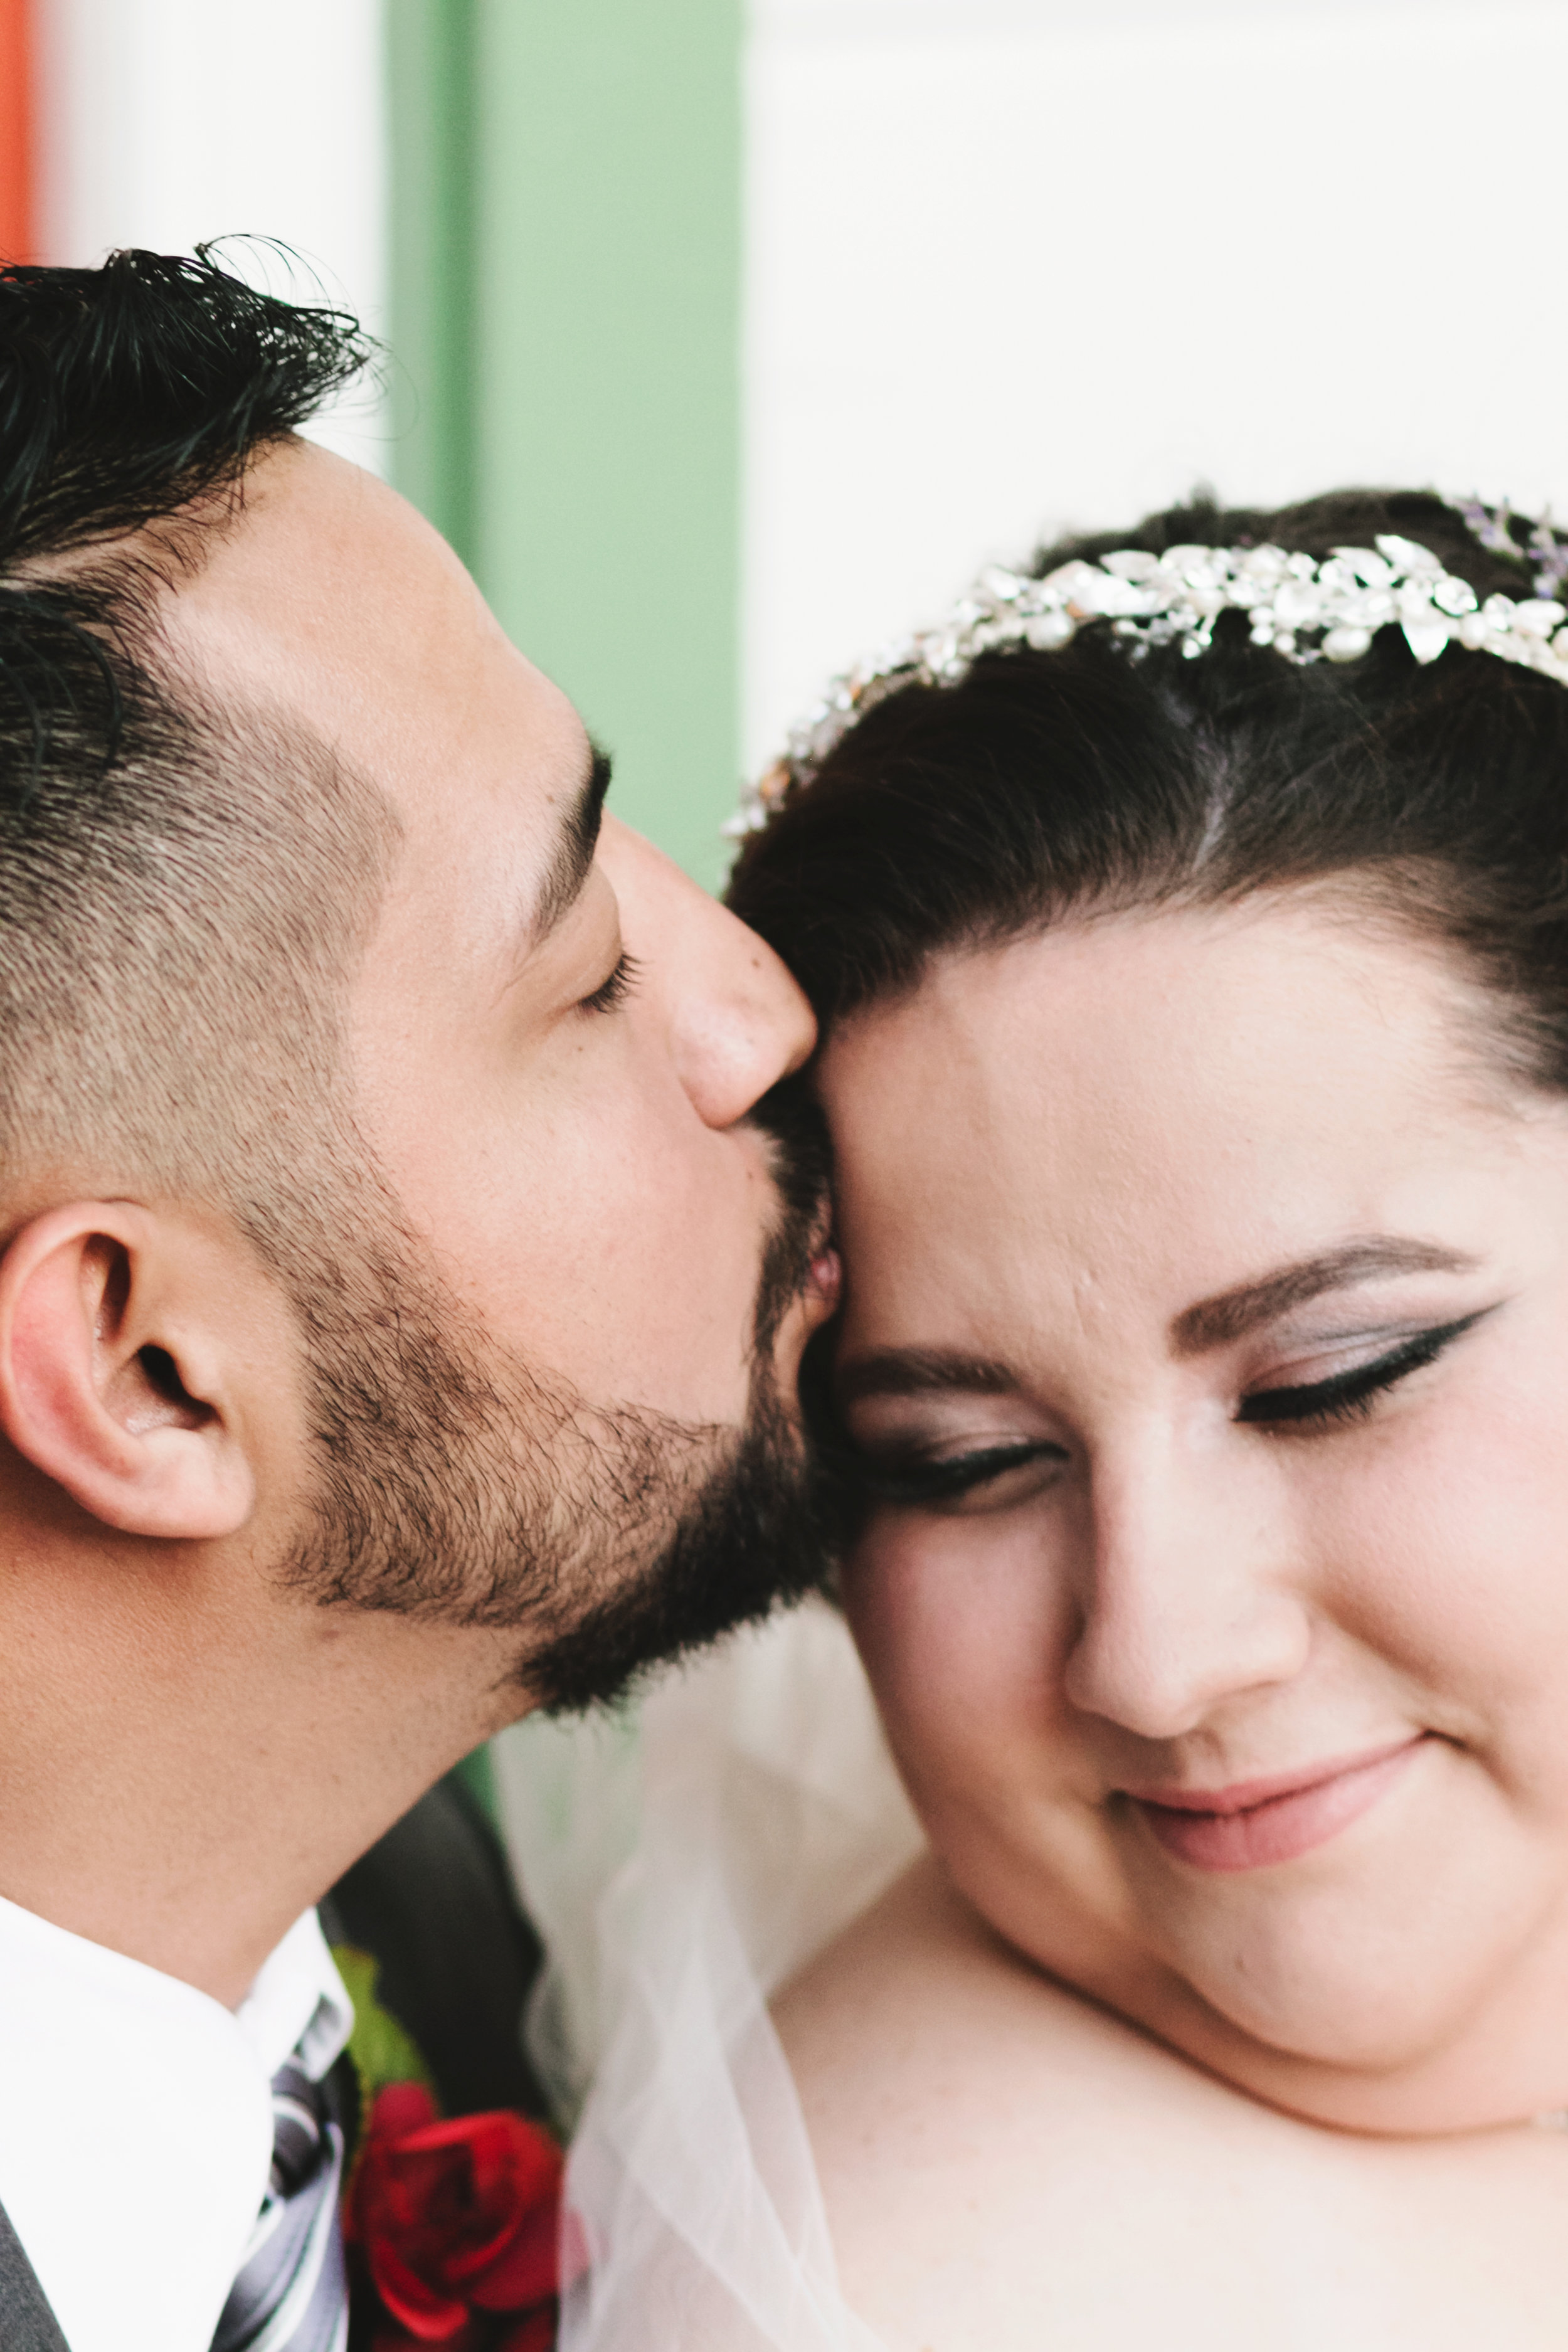 The Lopez Wedding  2017  - Alixanne was able to capture my engagement and wedding photos. I honestly would not go back and change that. She did a great job and continues to grow in her work. I highly recommend her service as me and my husband were blessed to have her capture everything she did! We loved Her service!!-Bryanna